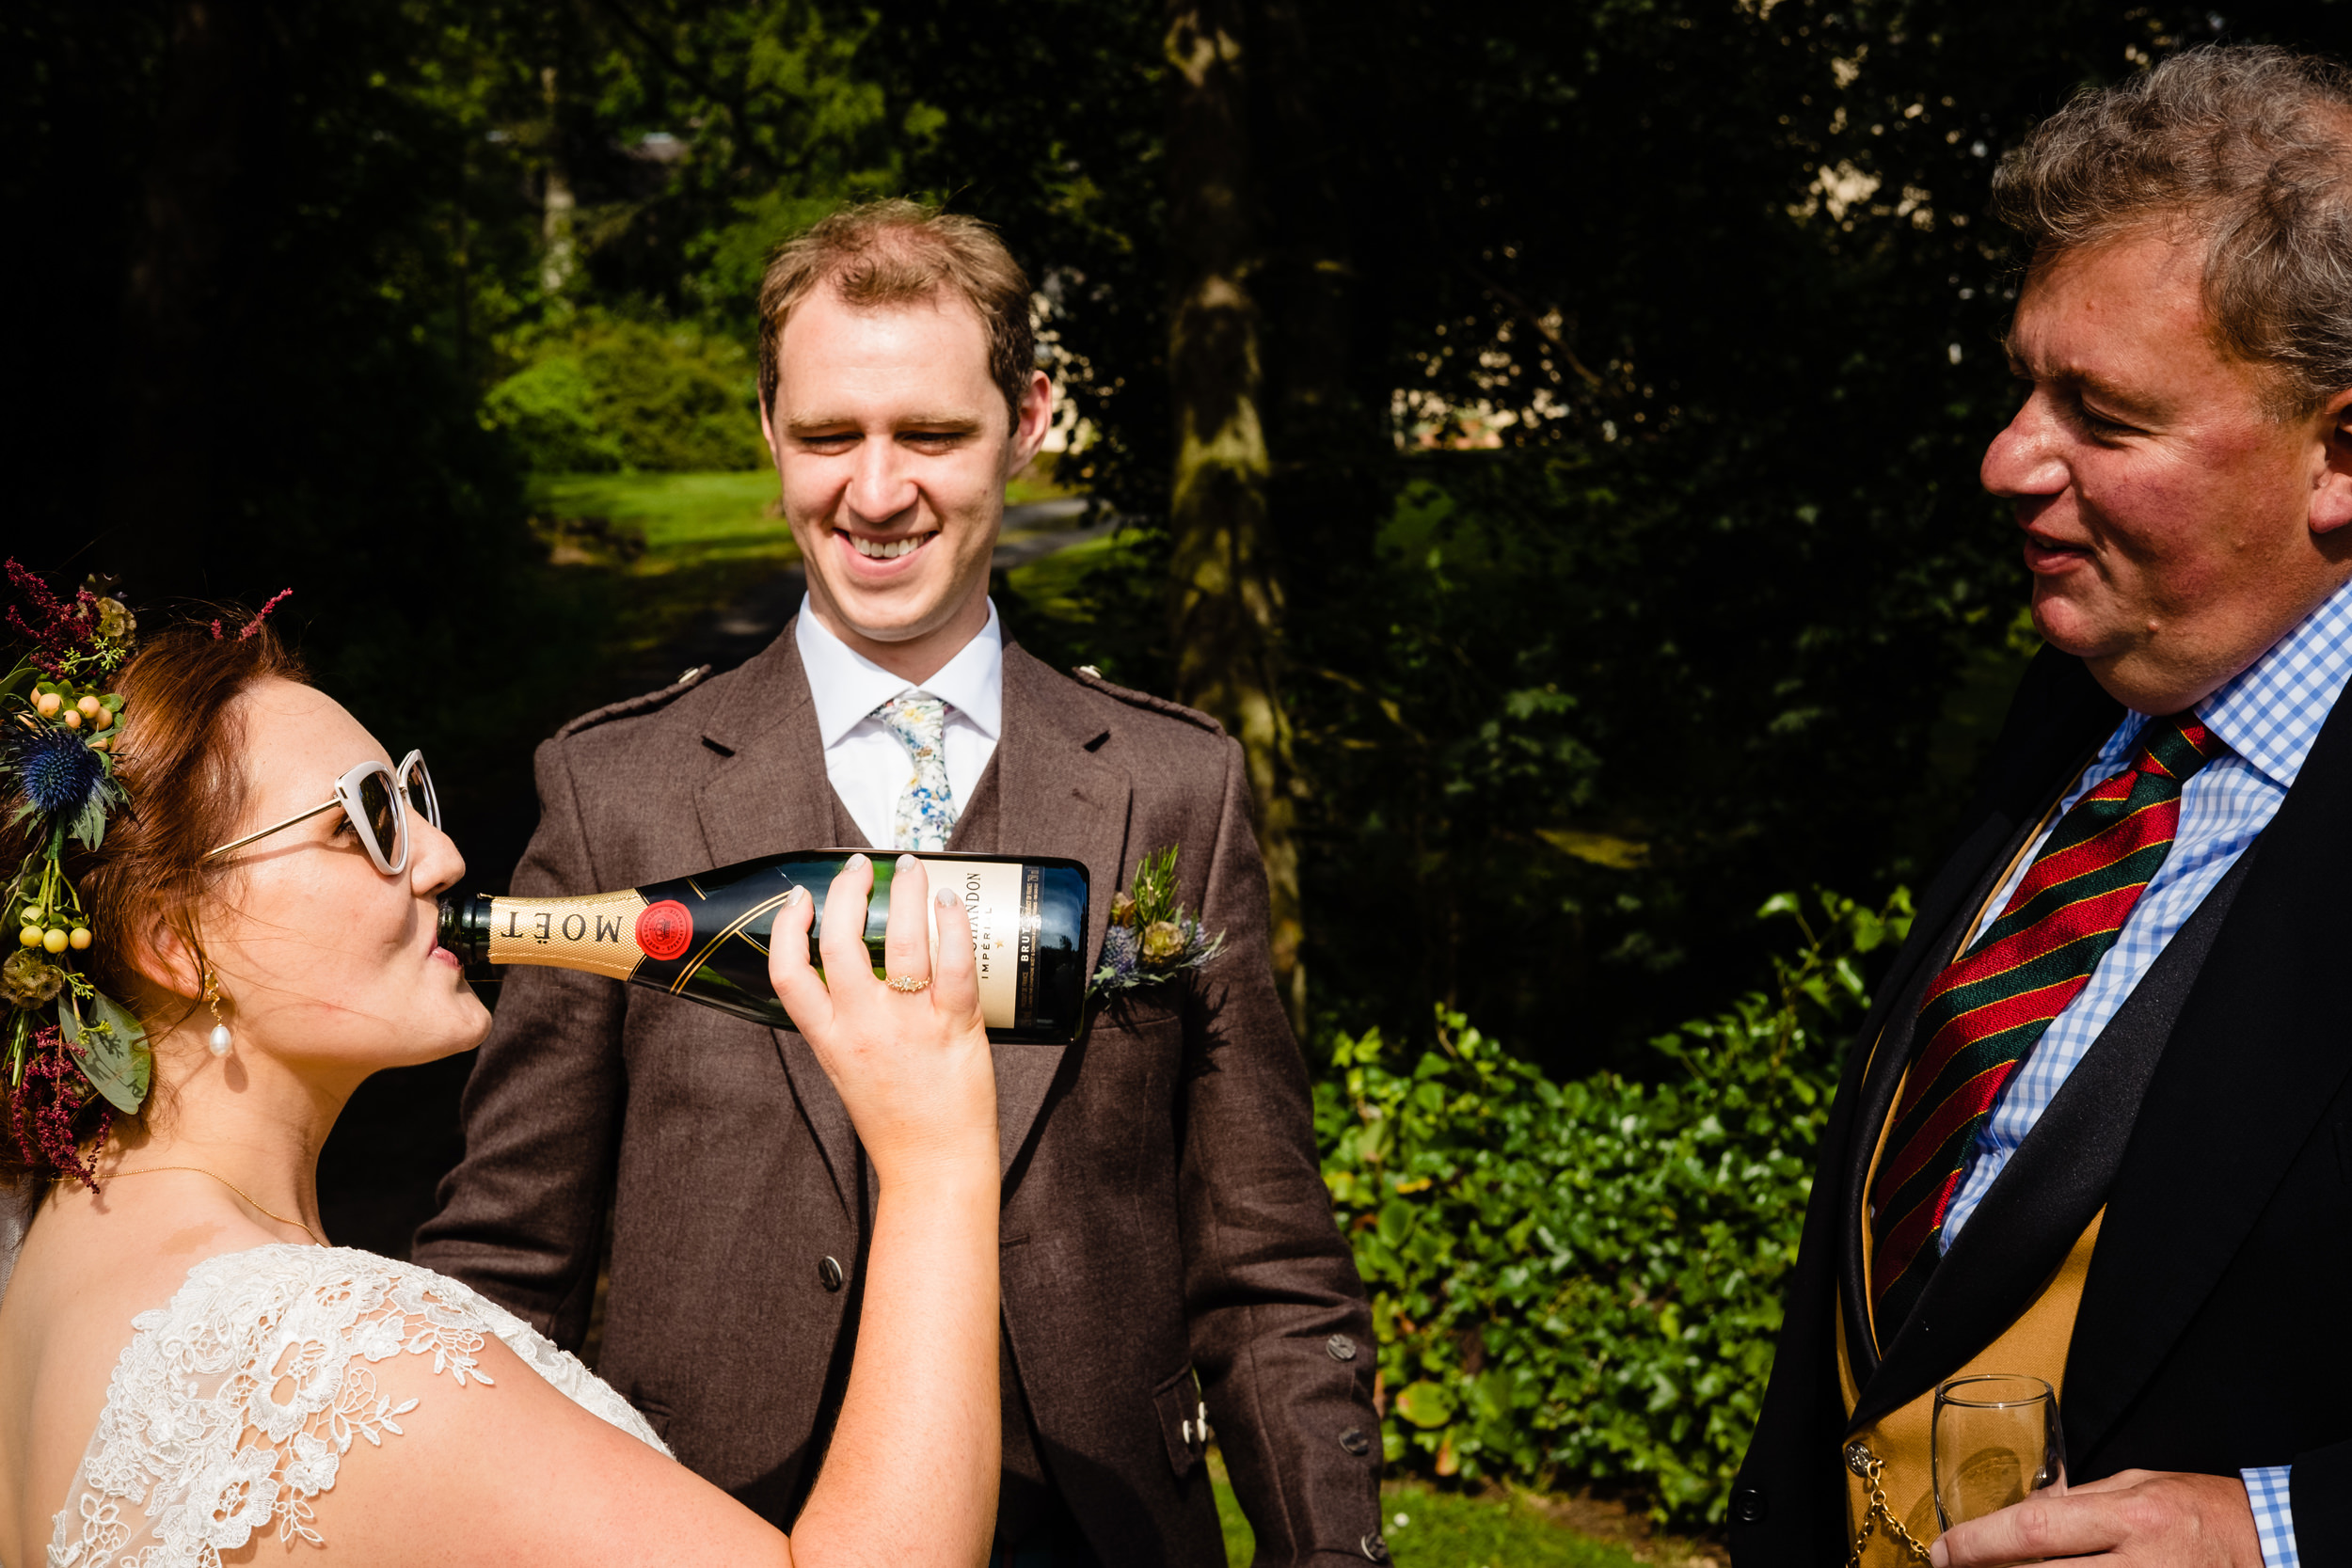 bride drinking champagne from the bottle. scotland wedding photography by emma and rich.